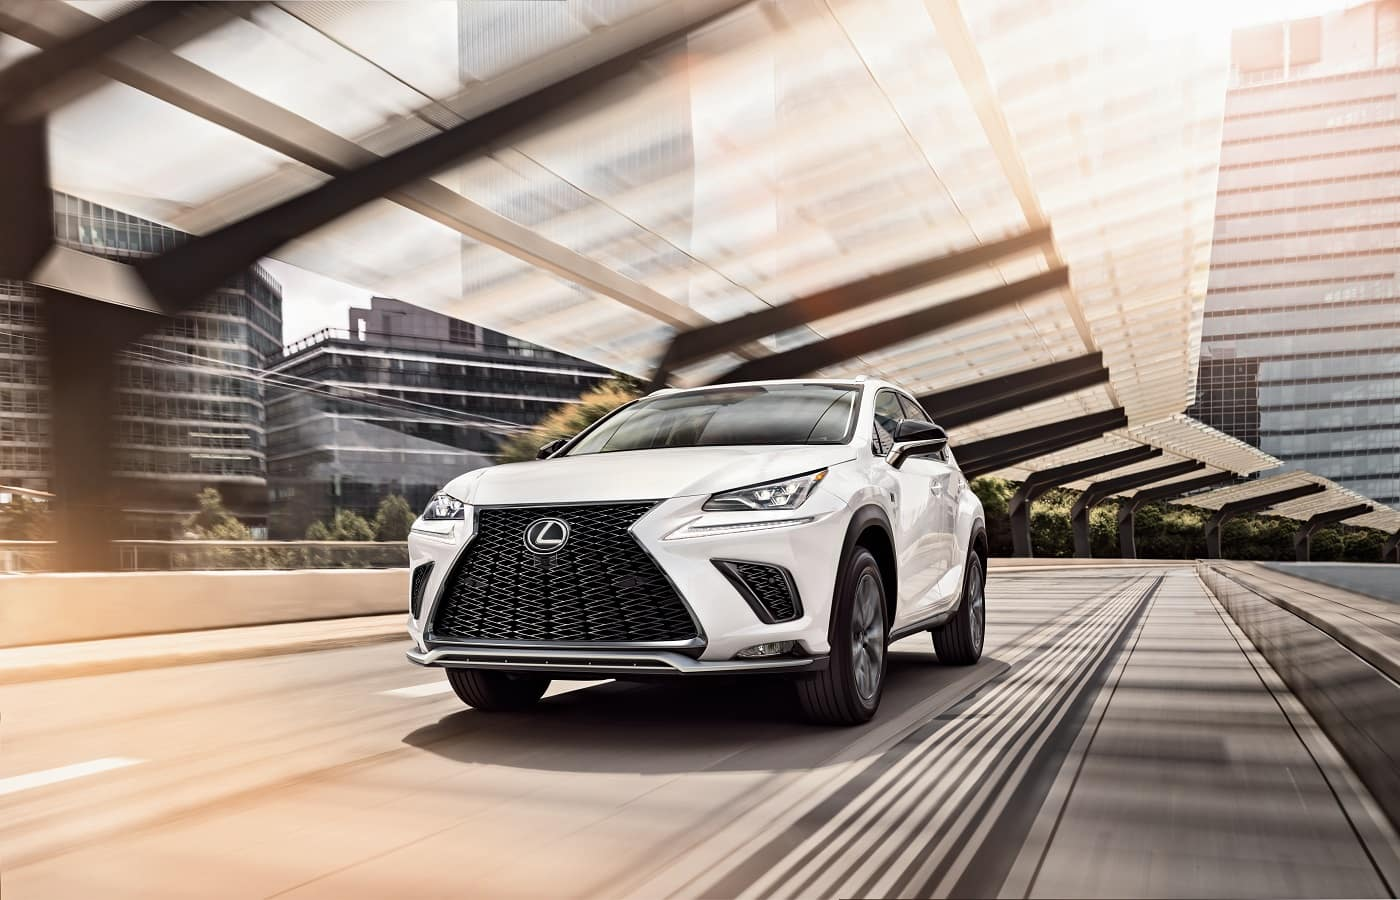 Certified Pre-Owned Lexus Inventory